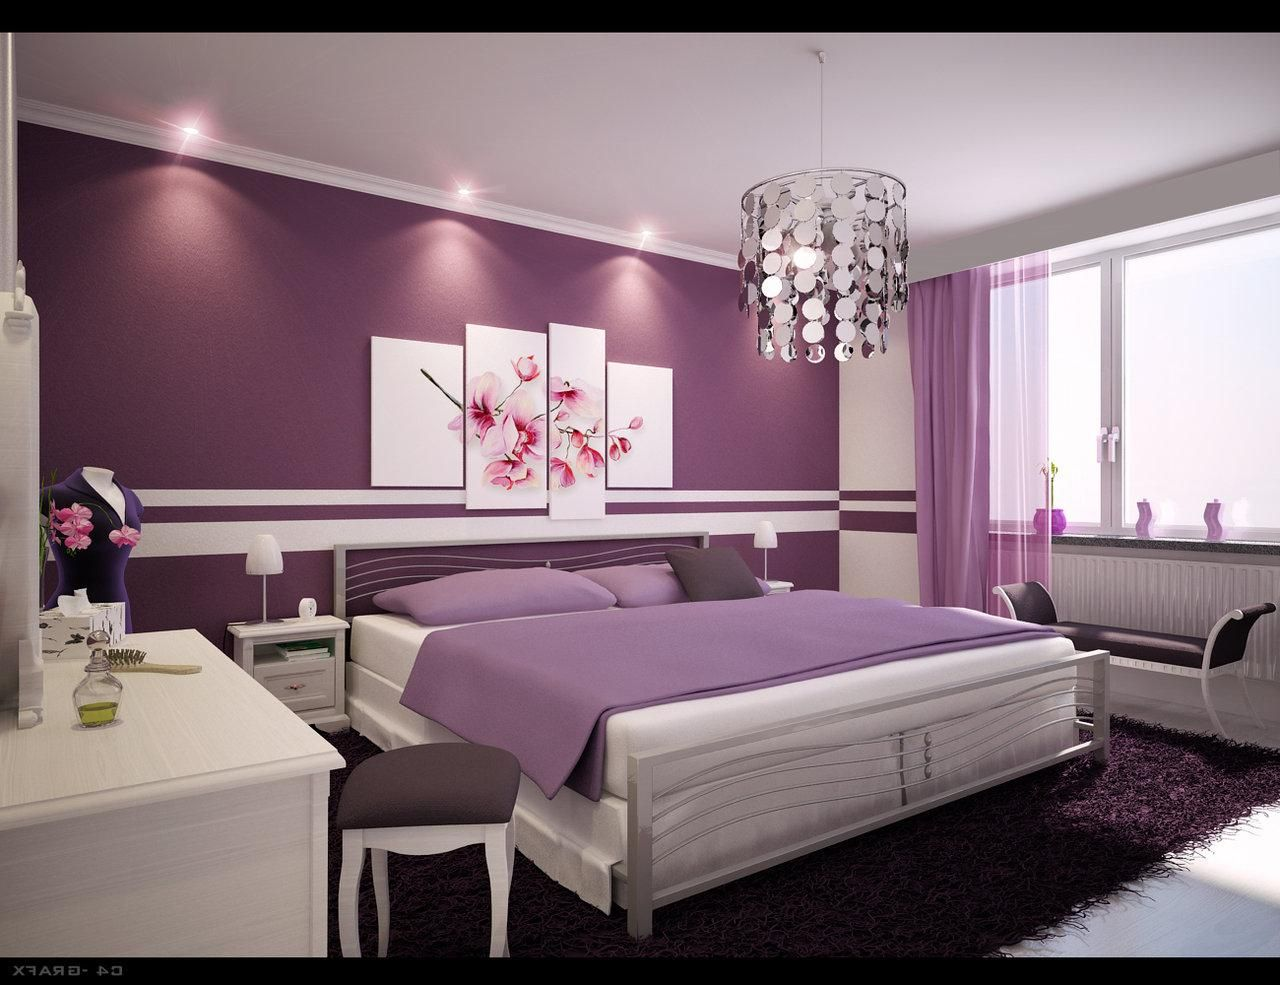 House Designs Inside Bedrooms House Plans House Plans Inside House